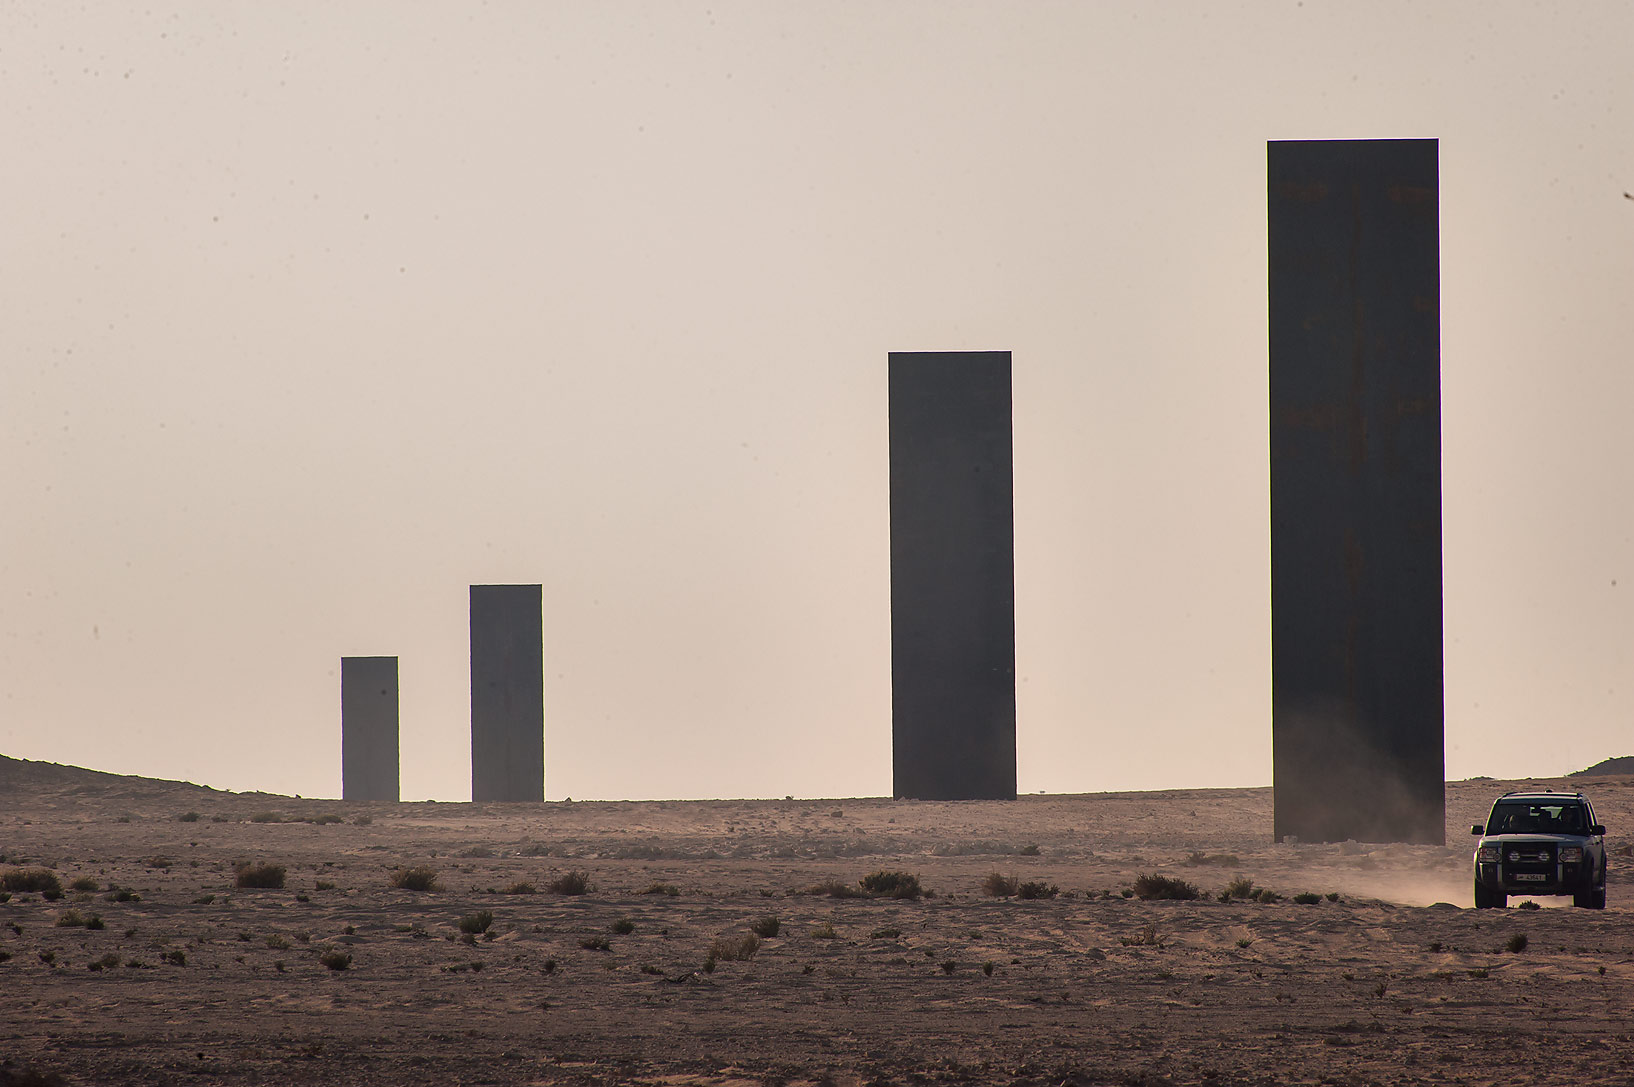 Steel plates Richard Serra's sculpture, East-West...Reserve on Ras Abrouq Peninsula. Qatar